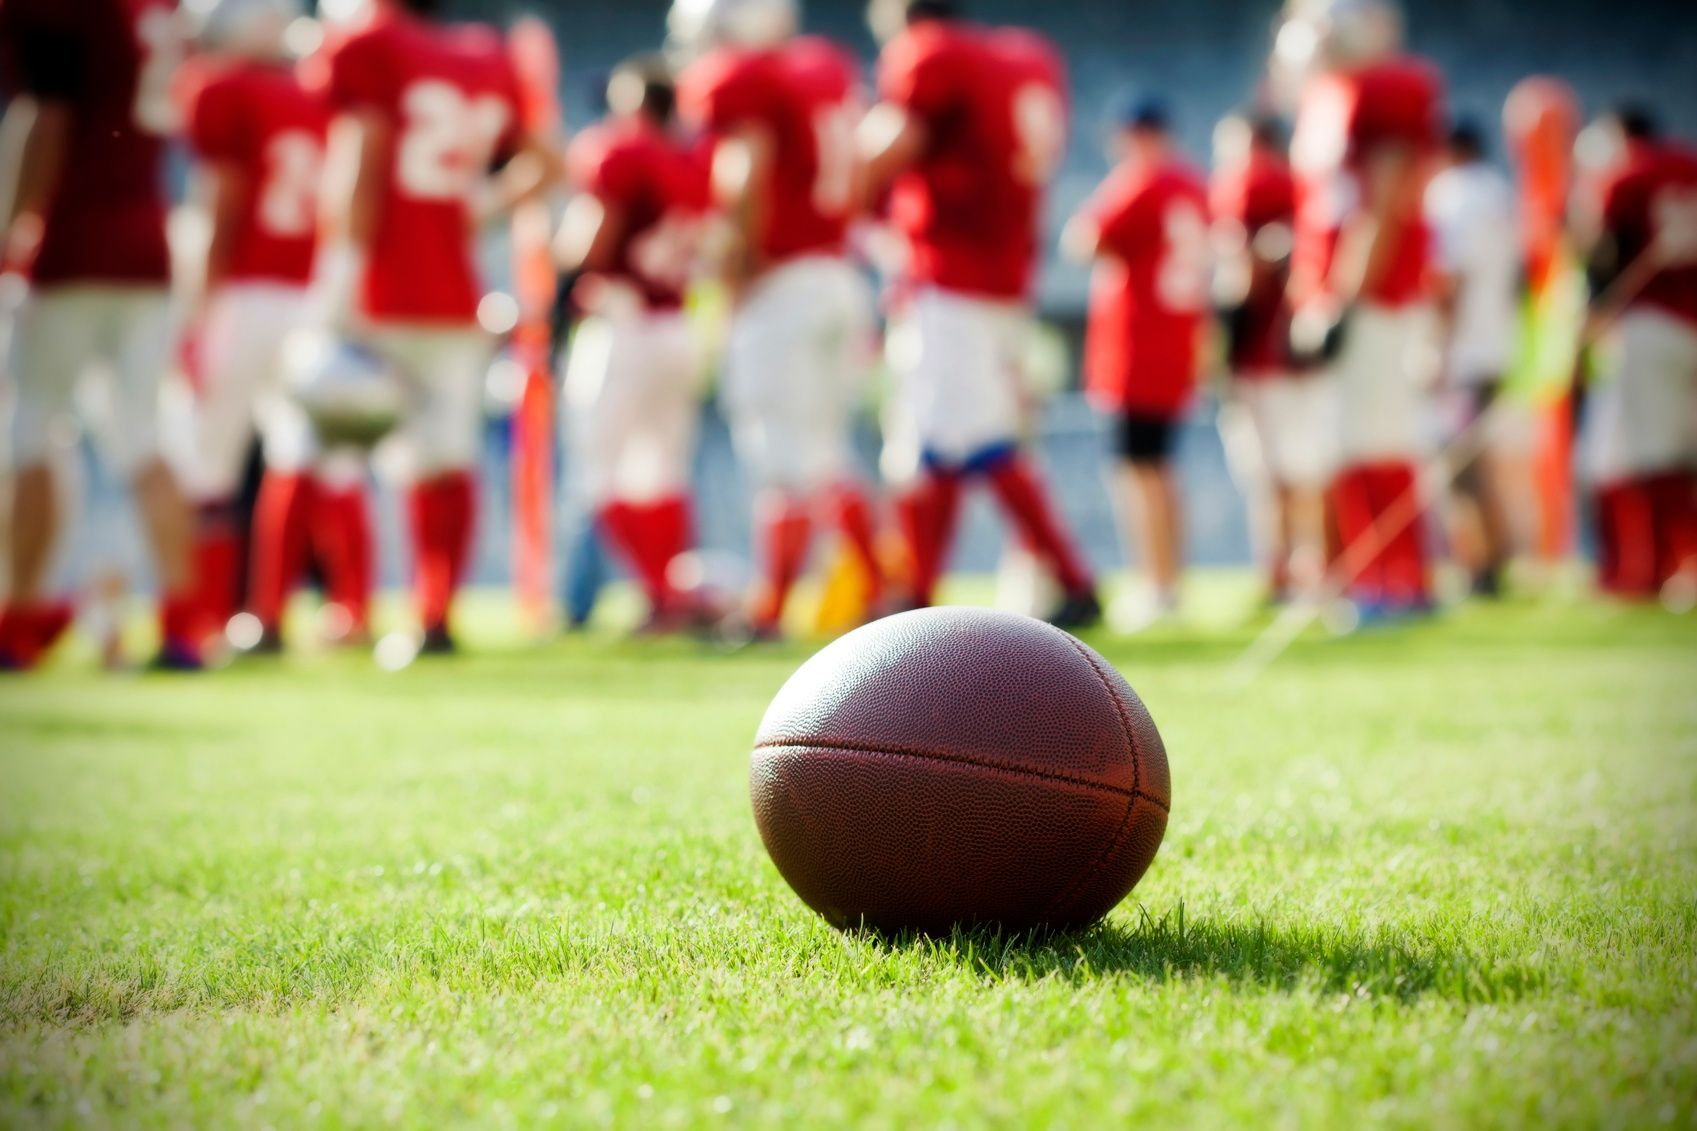 How to recognize a concussion on the field football